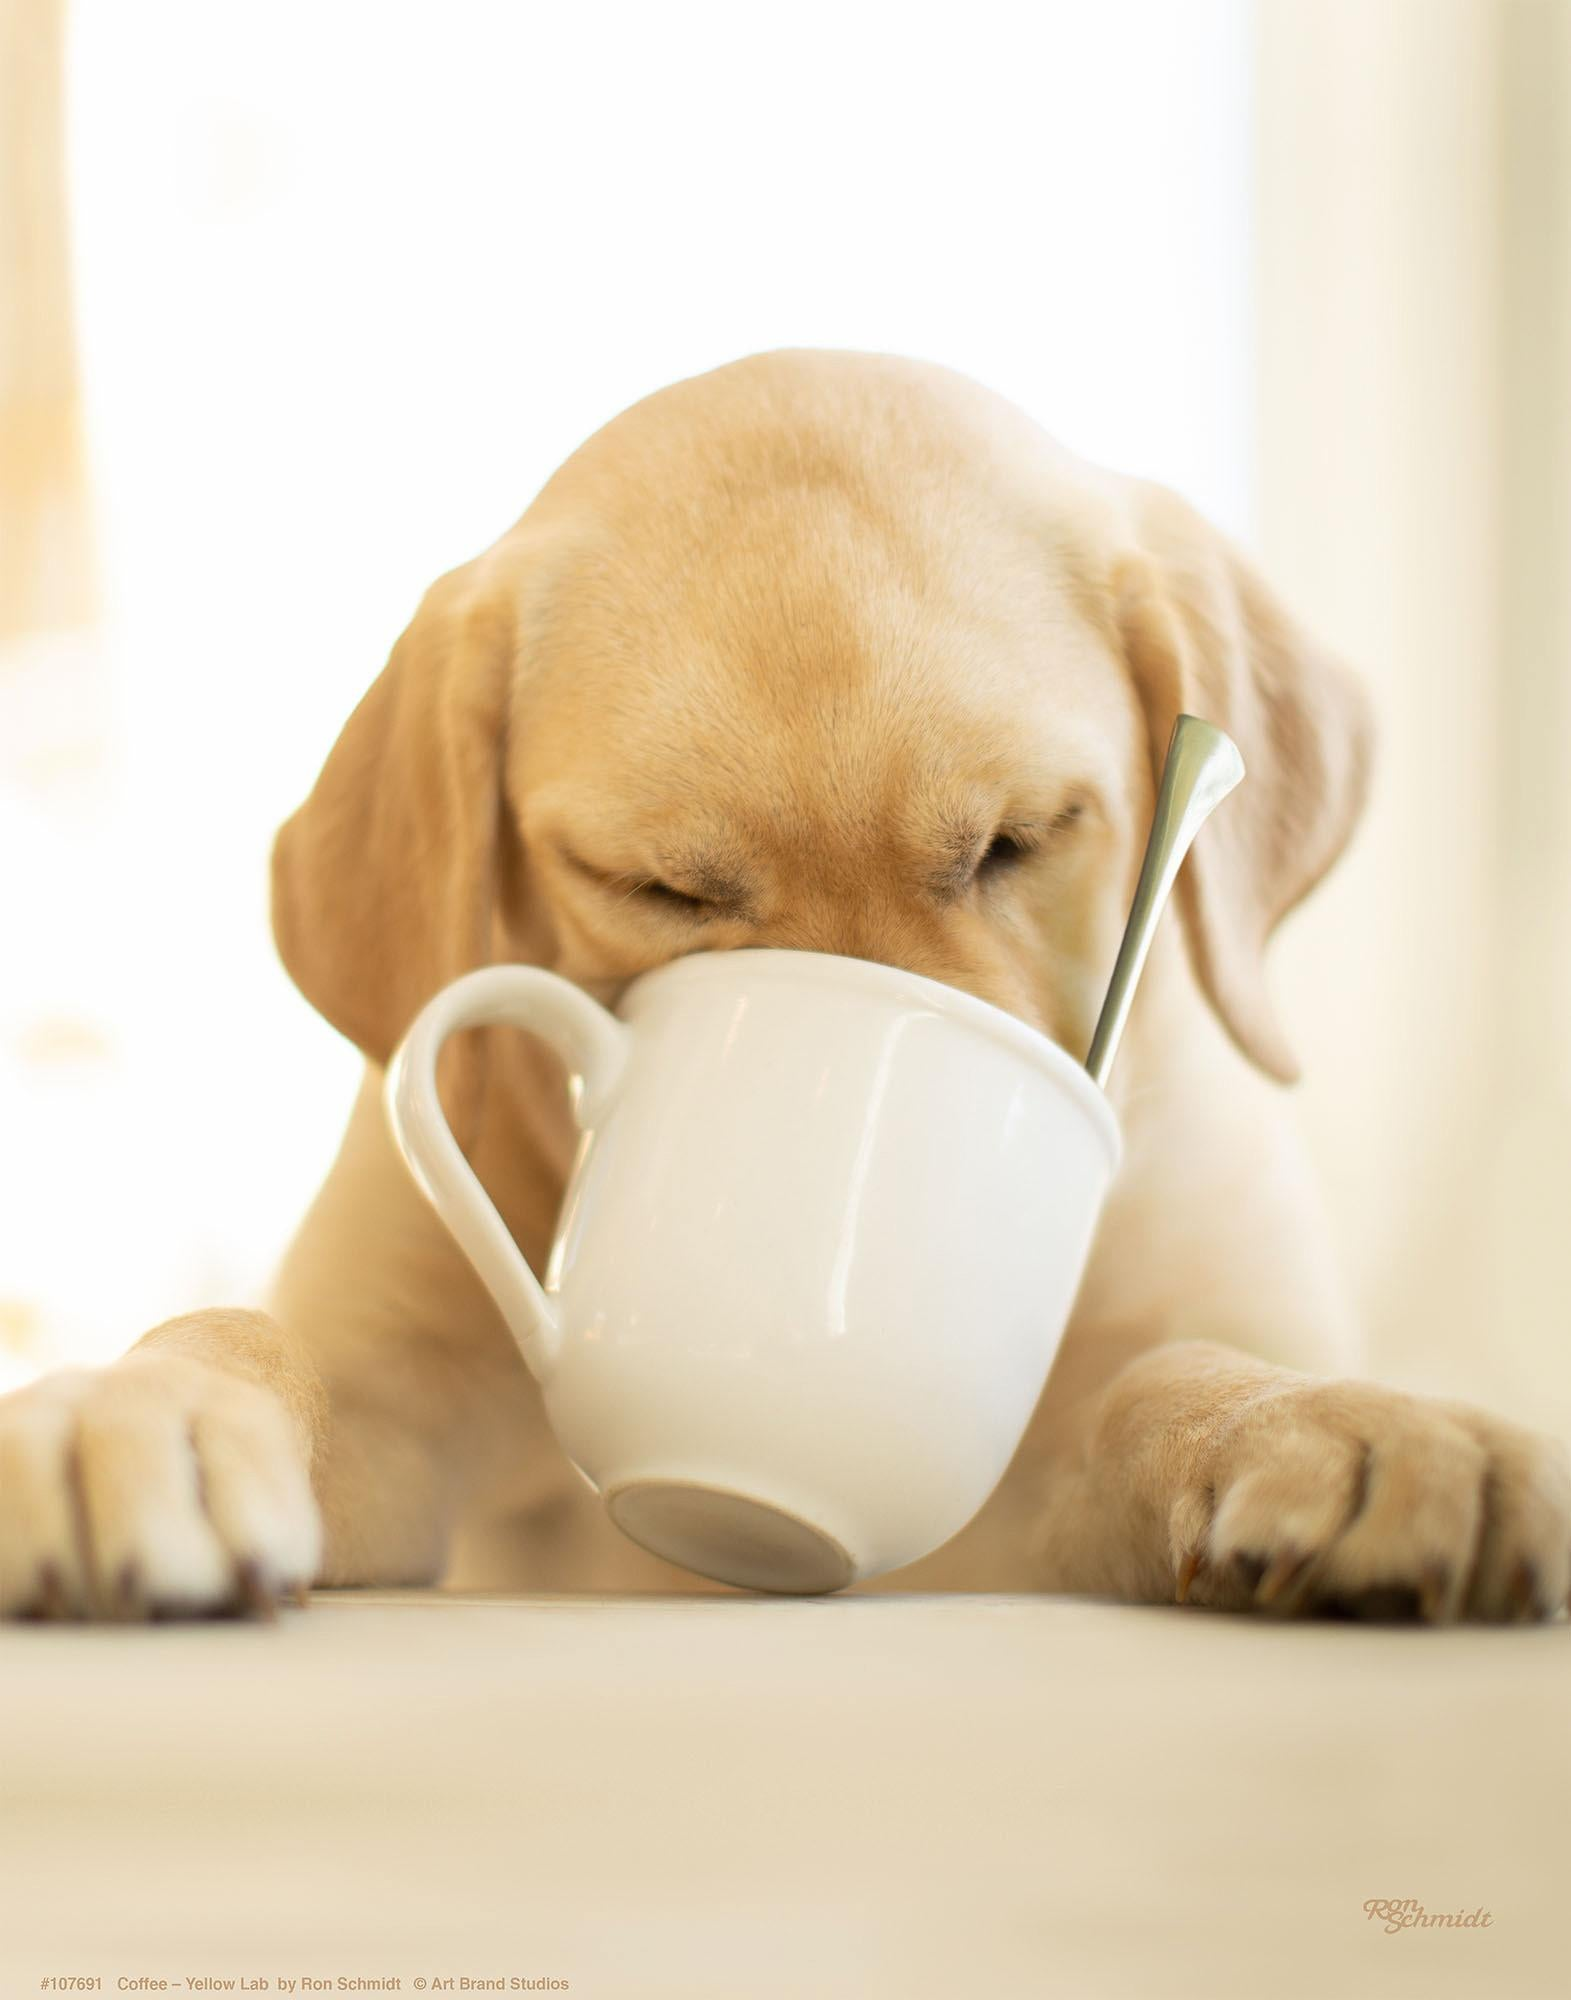 Coffee-Yellow Lab Art Collection